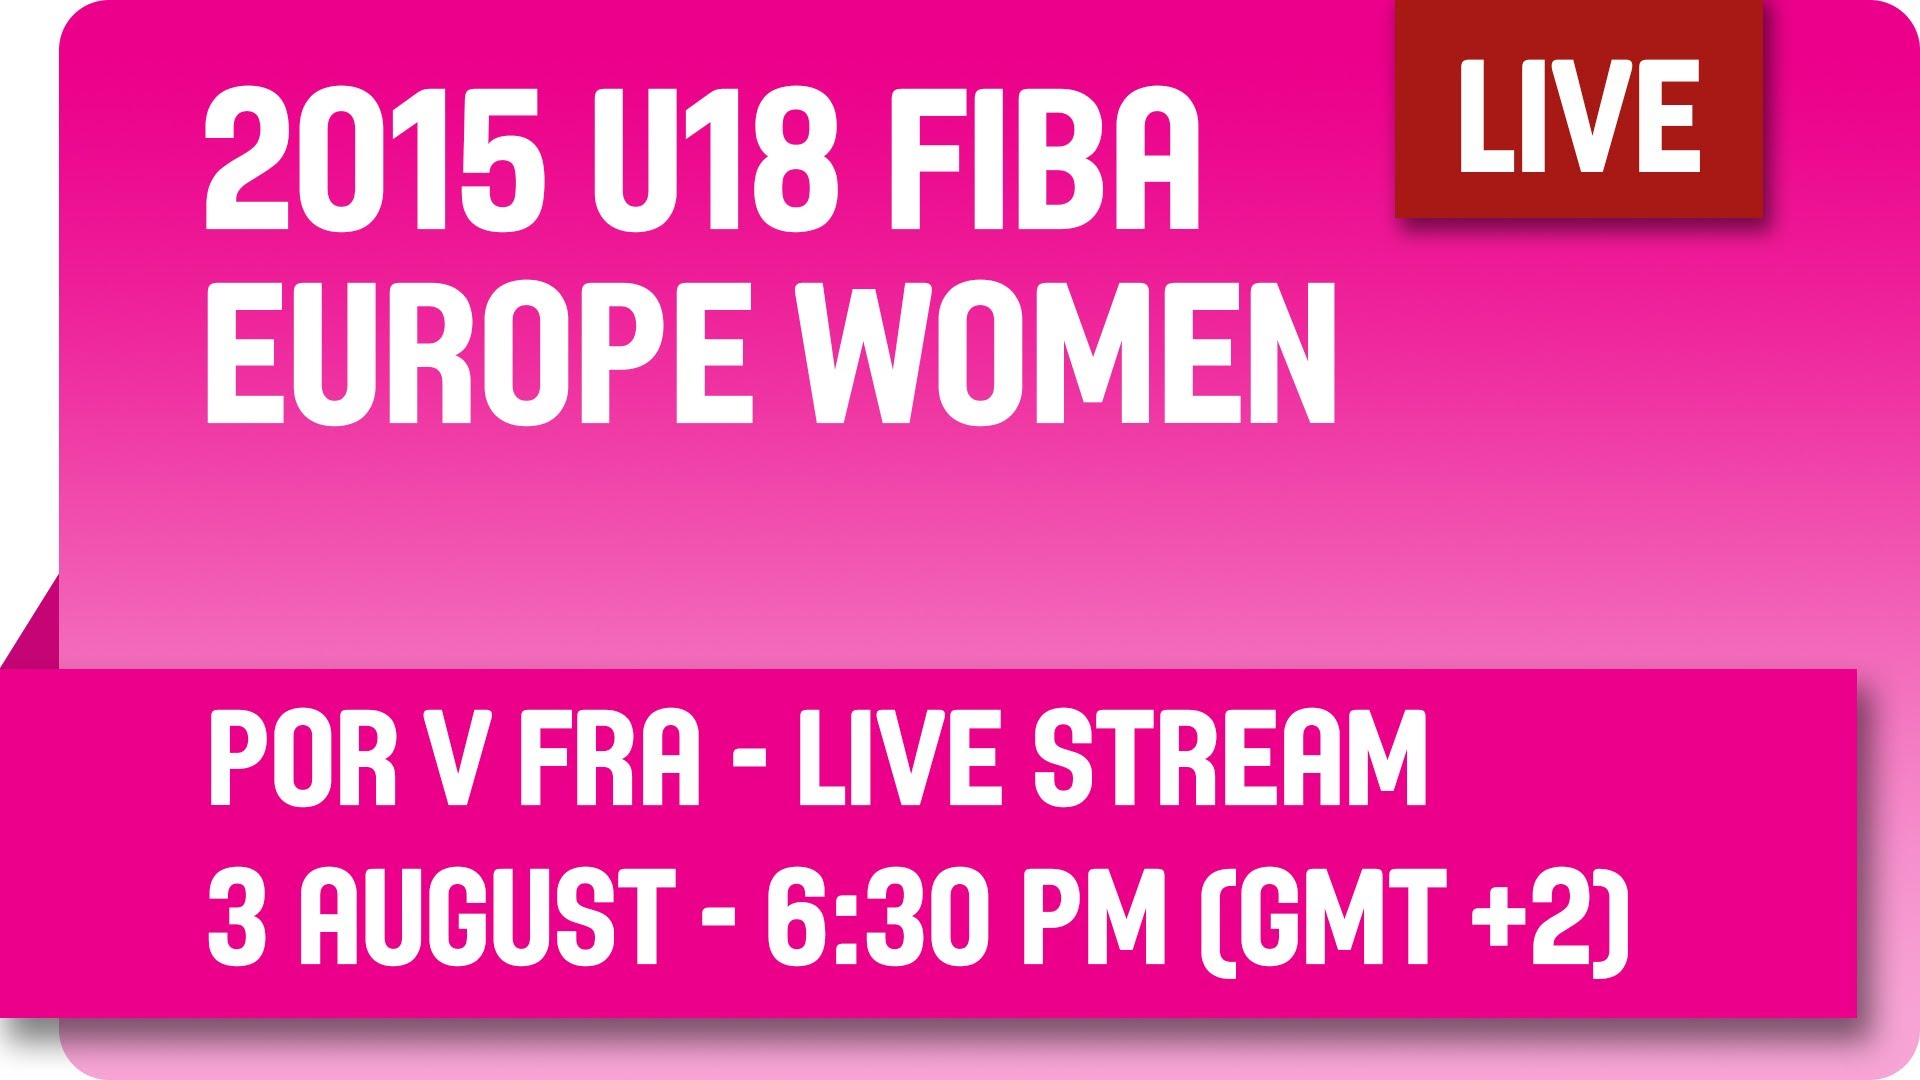 Portugal v France - Group E - Live Stream - 2015 U18 European Championship Women